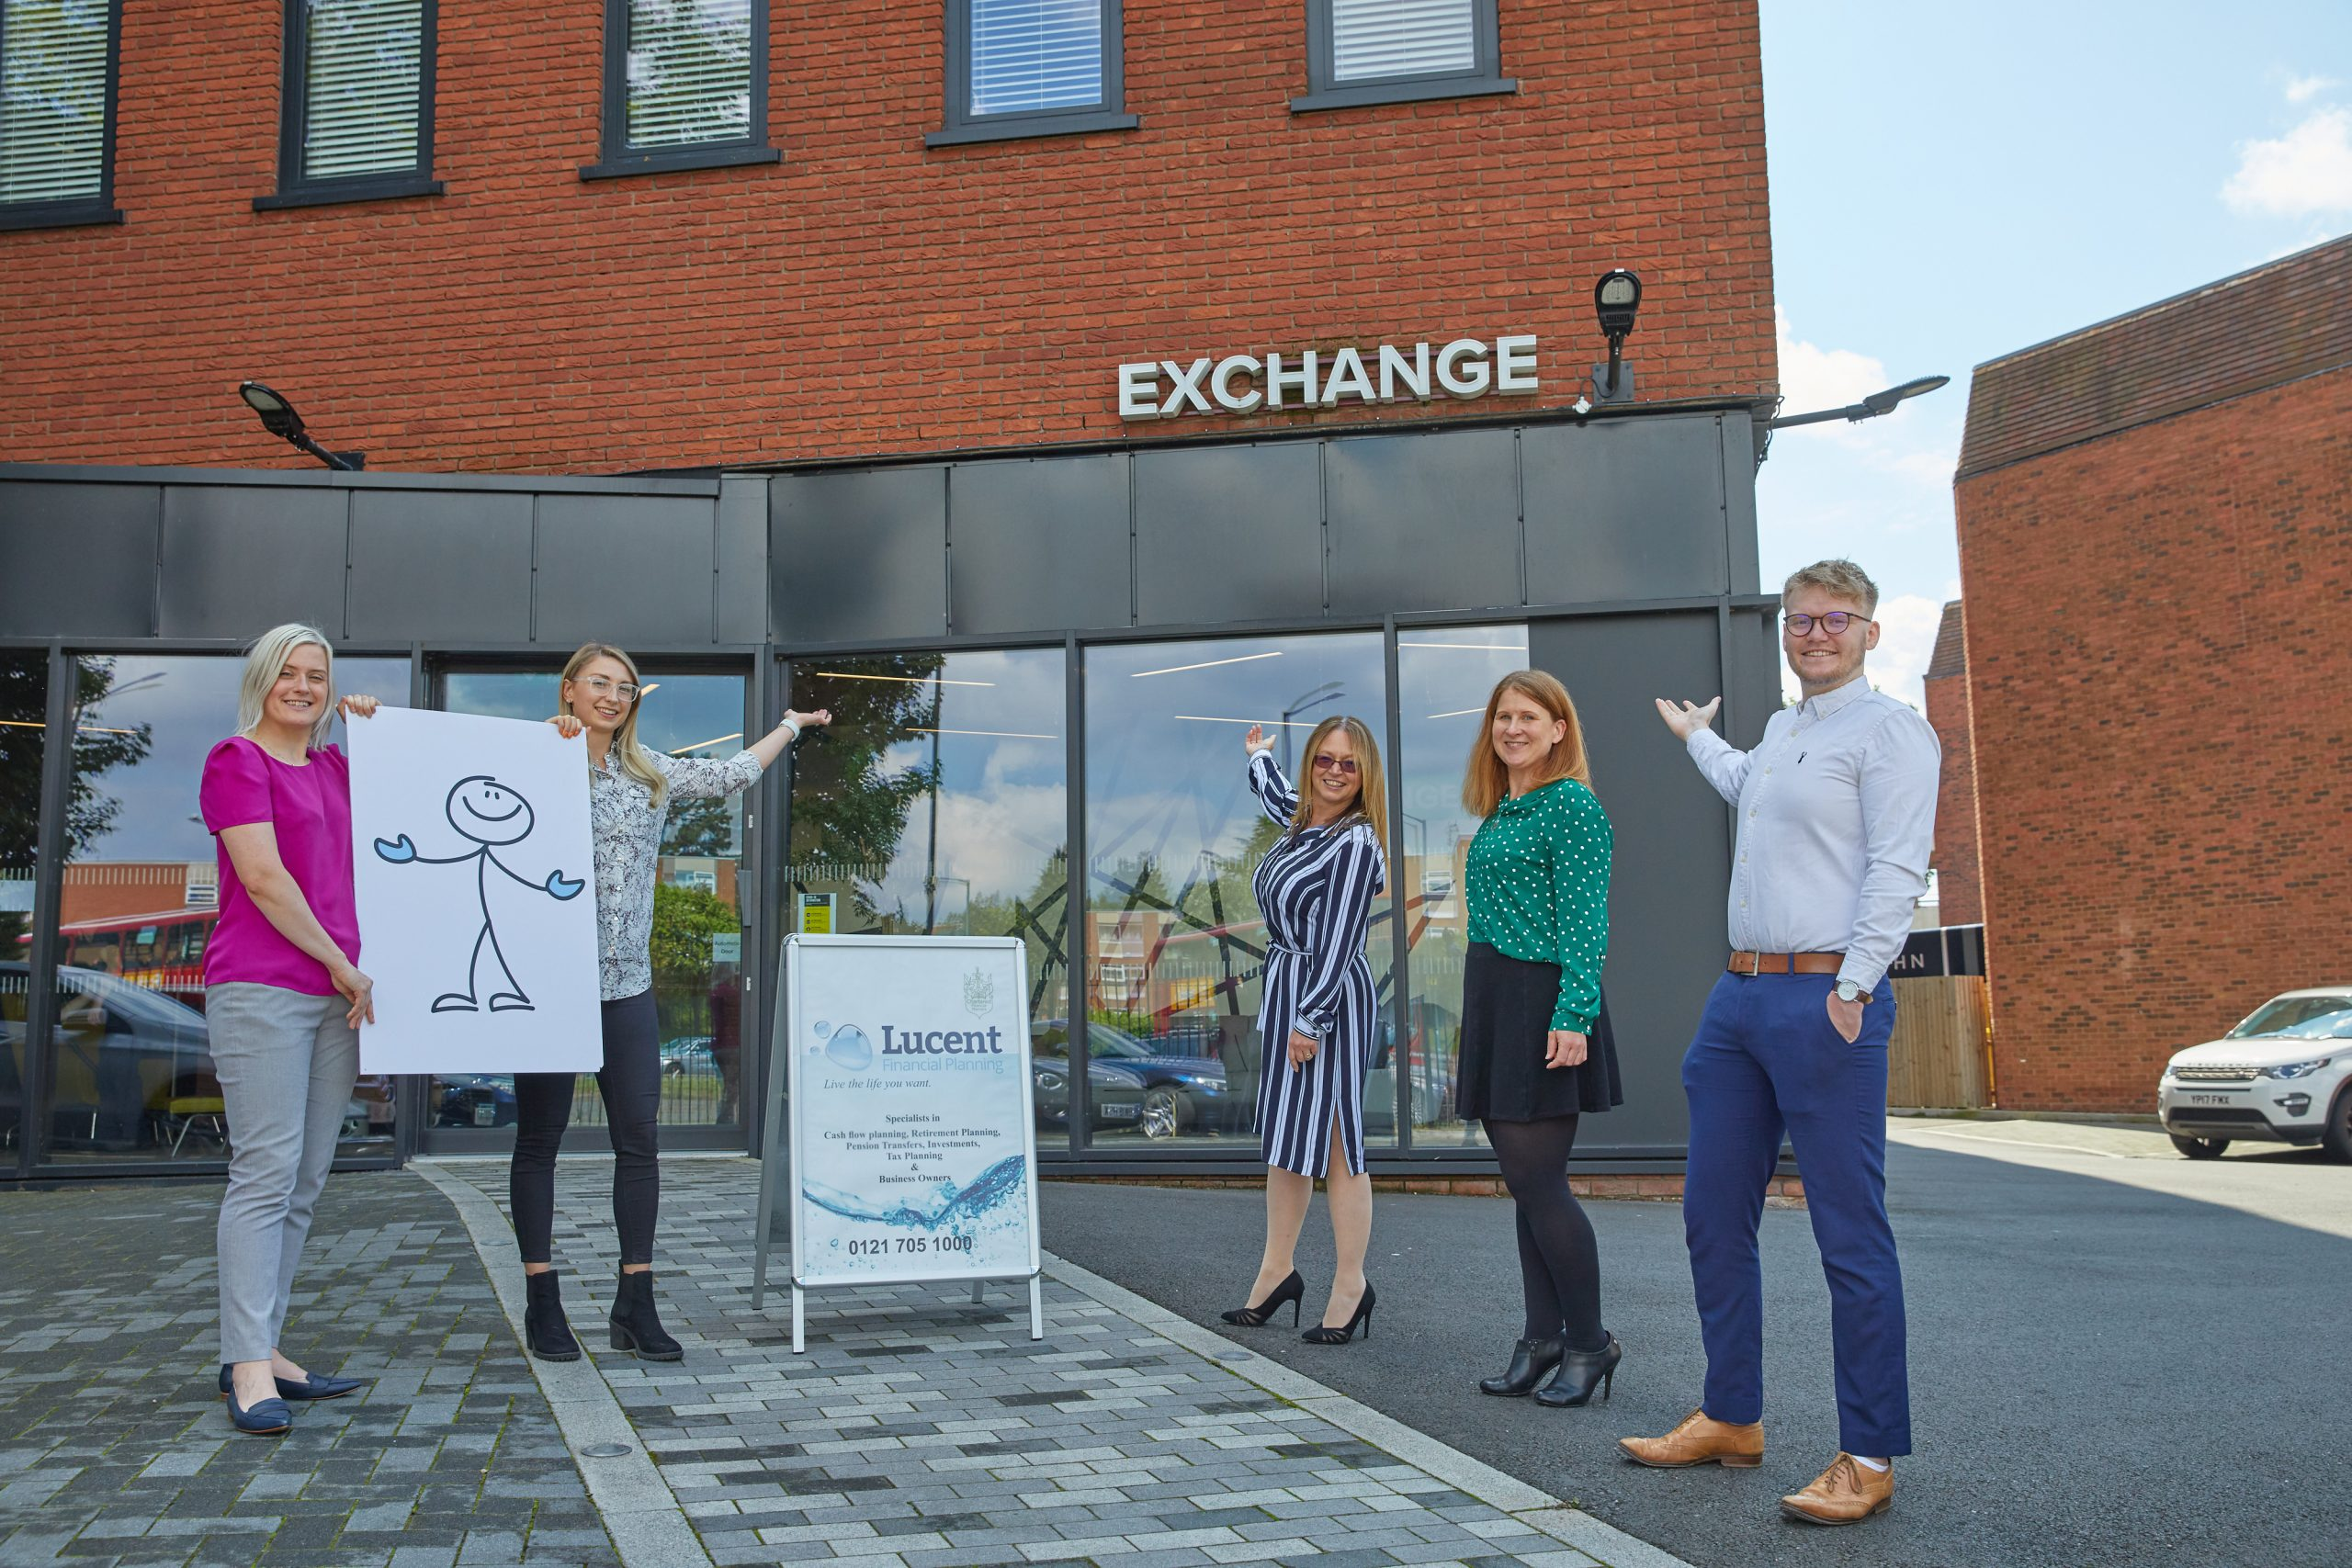 Lucent team welcome you to The Exchange